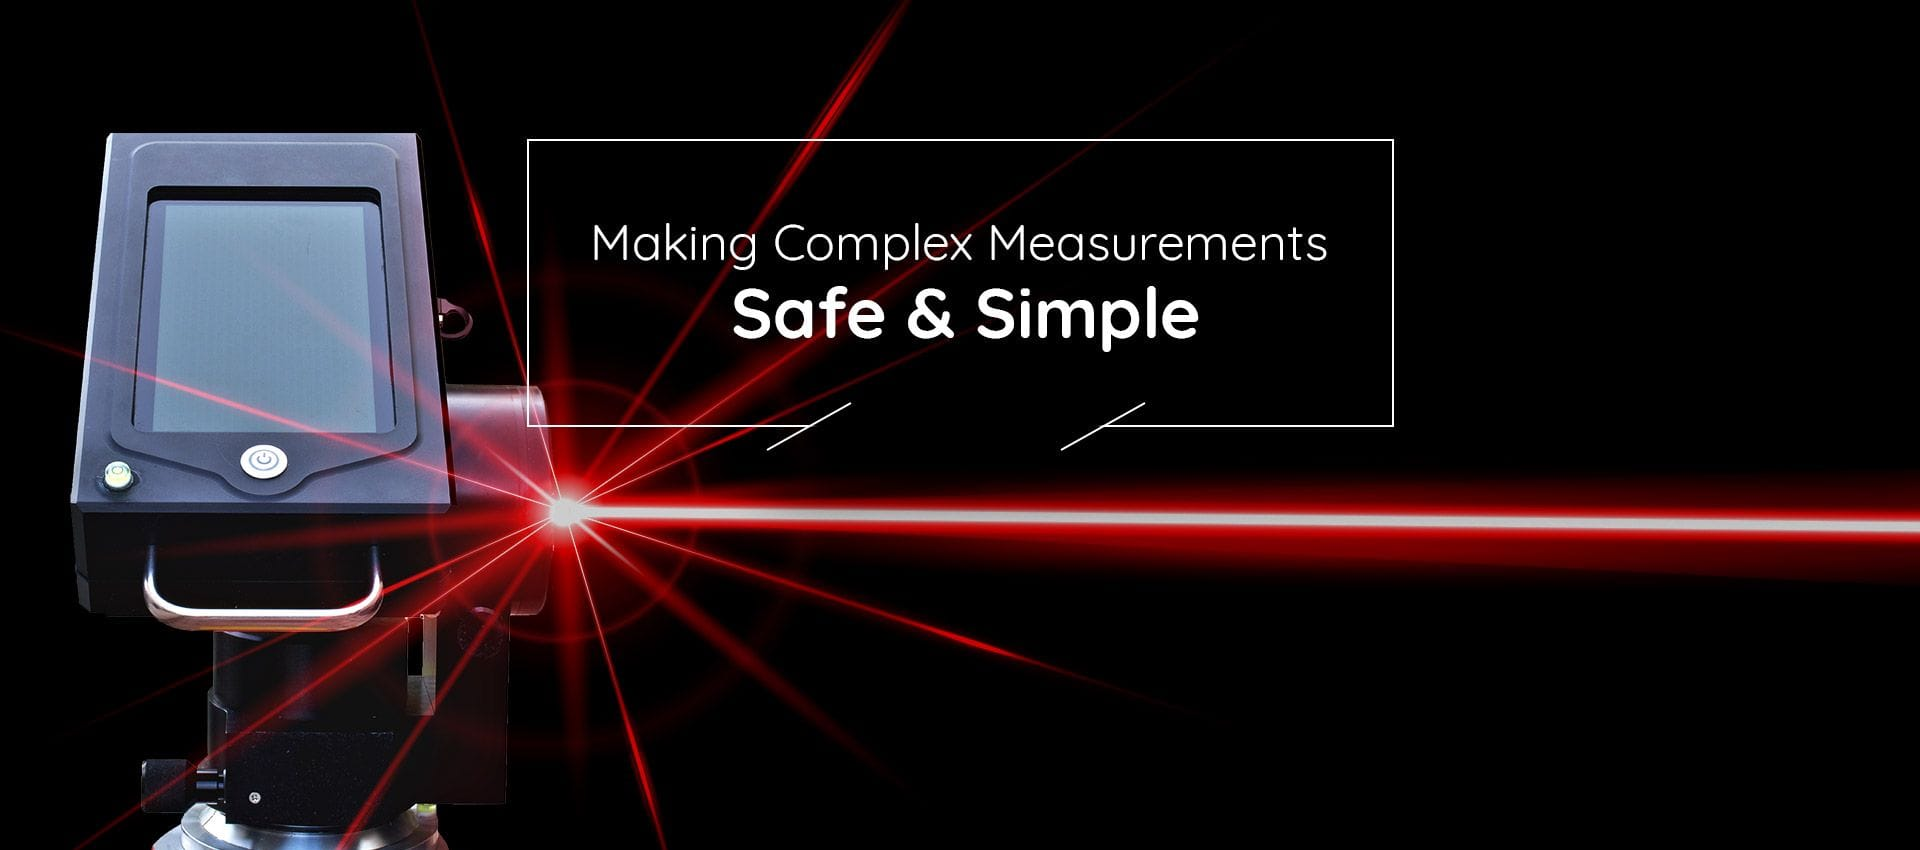 Making Complex Laser Measurements Safe & Simple | ApoSys Technologies Inc.